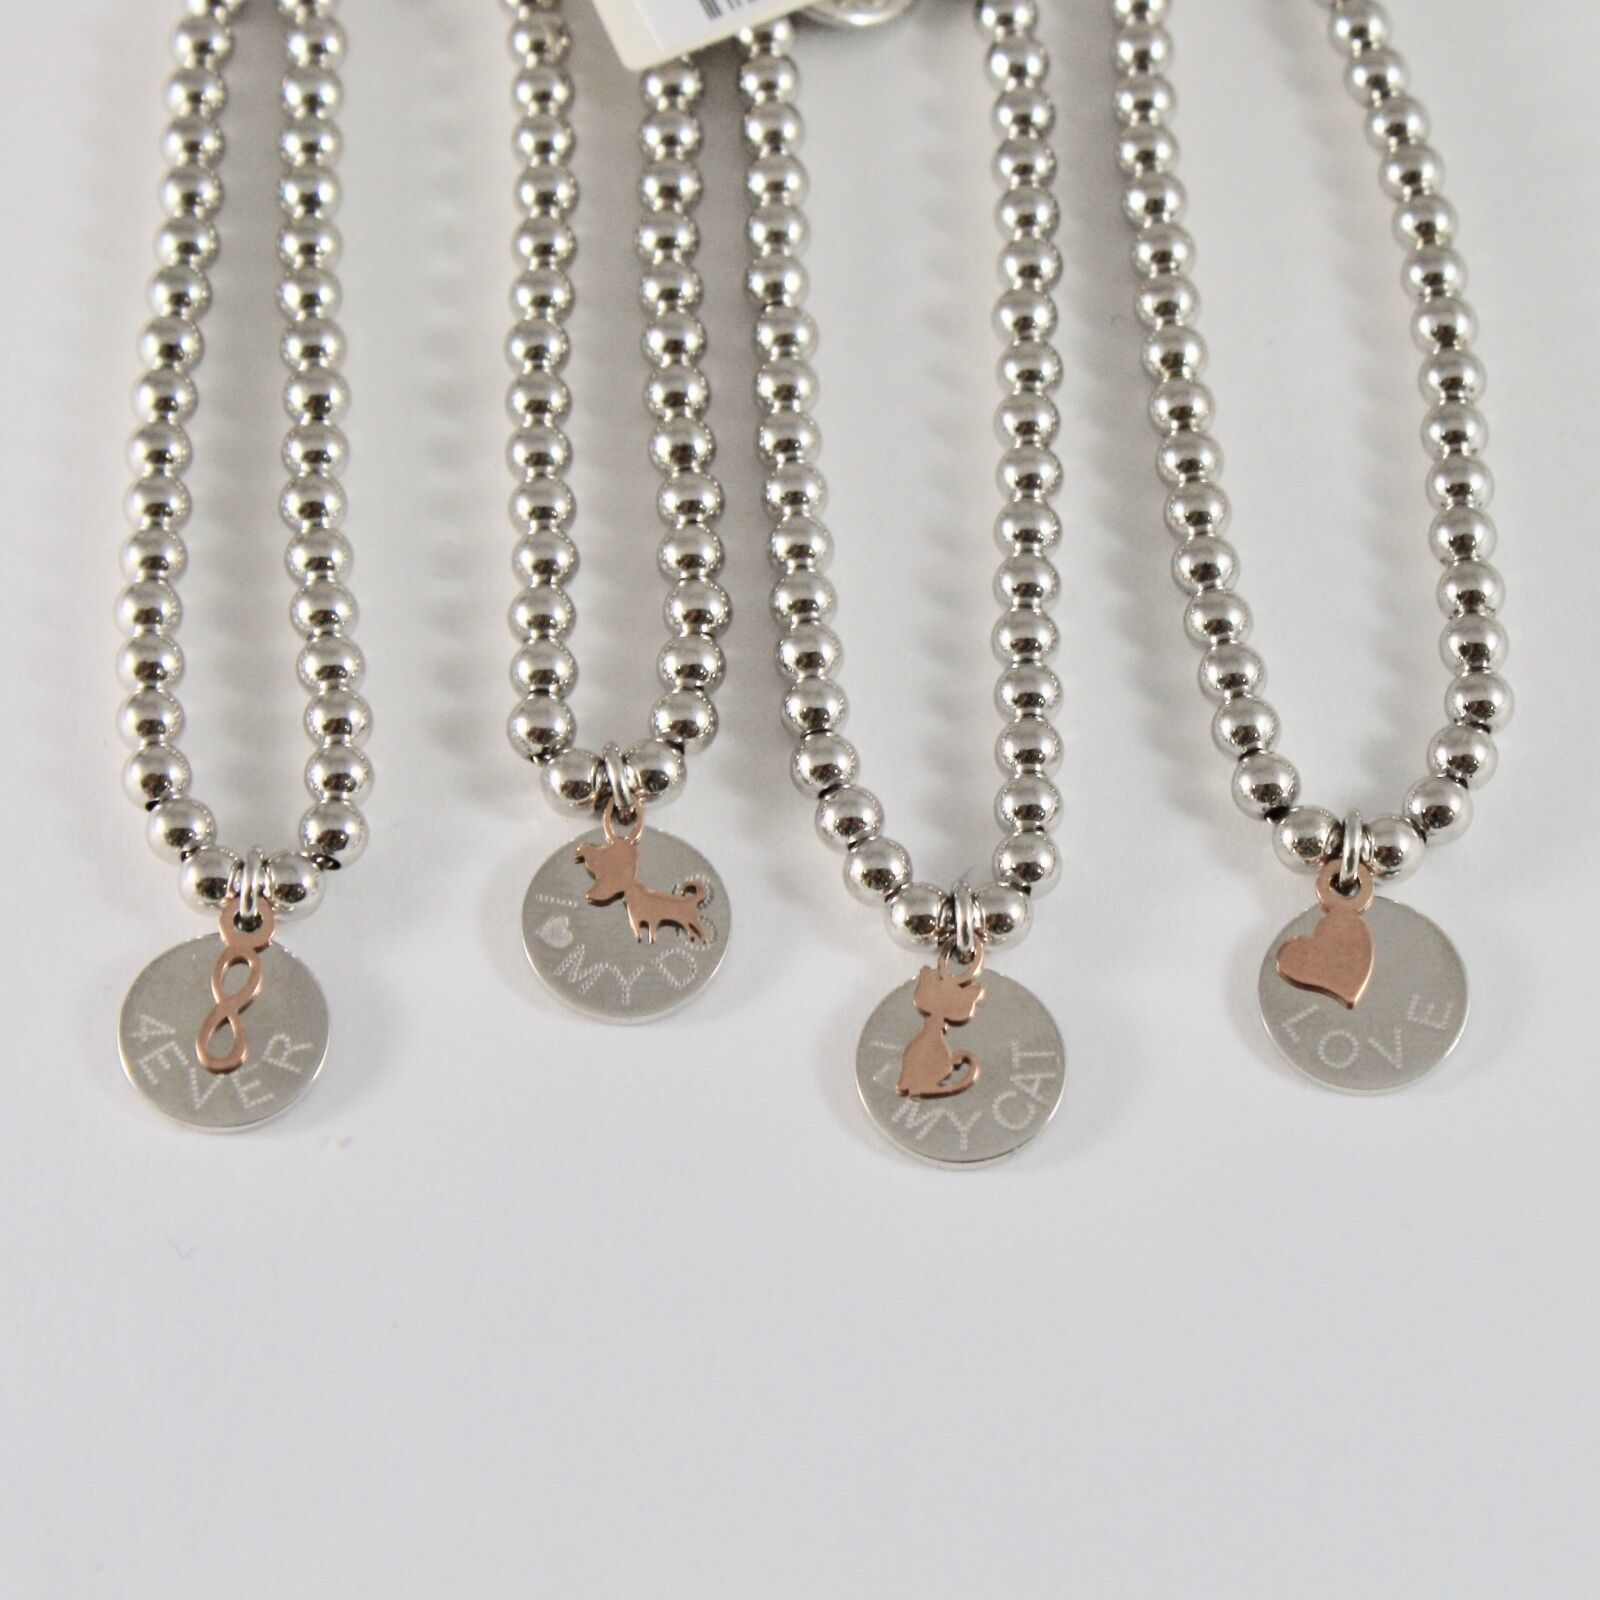 Silver Bracelet 925 Jack&co with Balls Shiny and Pendant in Rose Gold 9 Carats